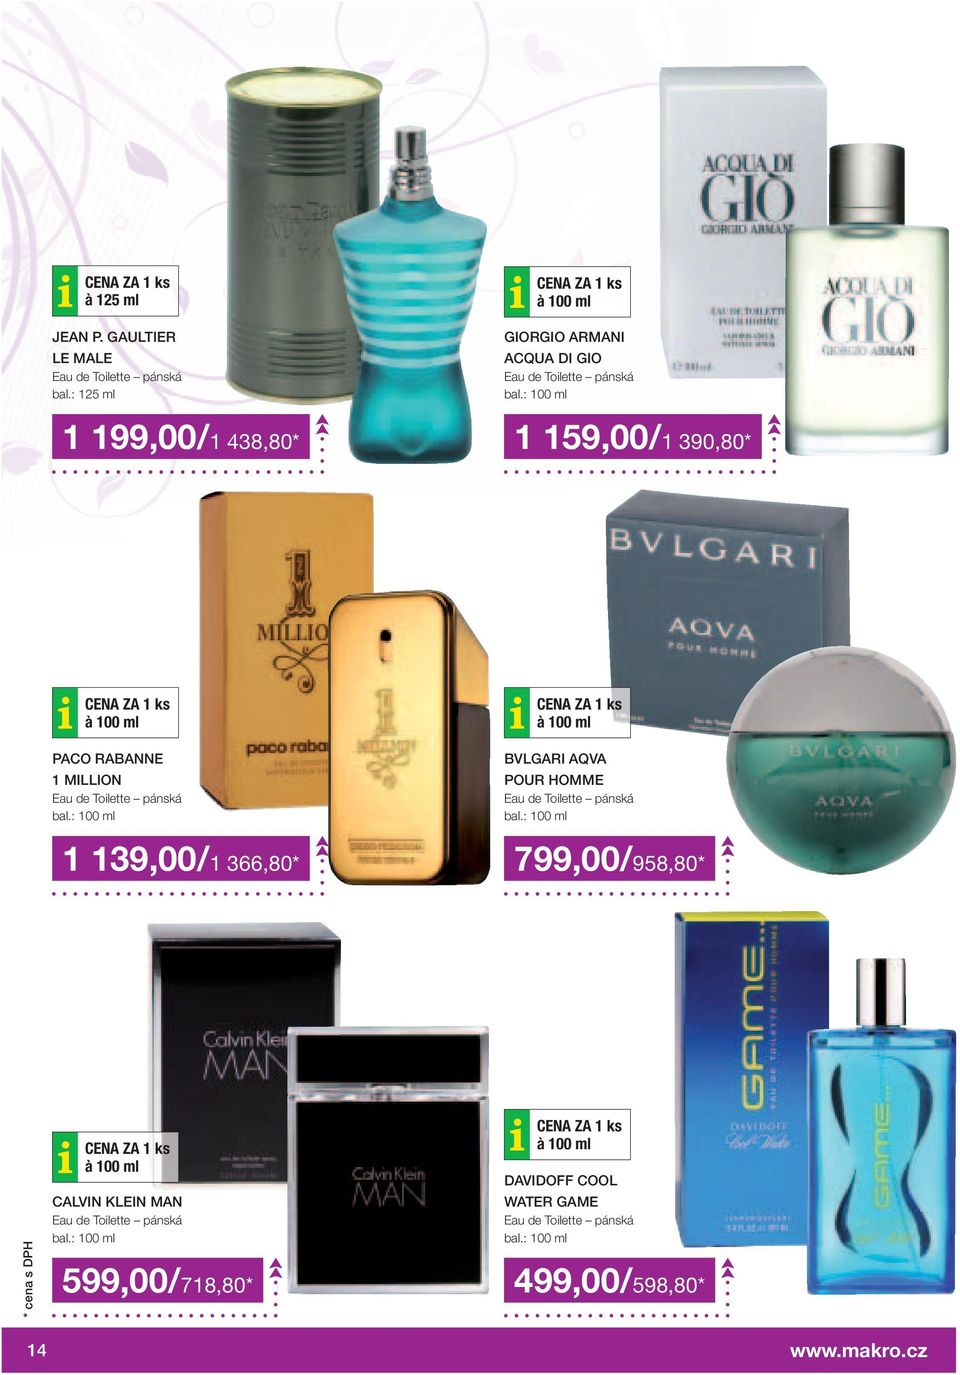 : 100 ml 1 199,00/1 438,80* 1 159,00/1 390,80* CENA ZA 1 ks à 100 ml PACO RABANNE 1 MILLION Eau de Toilette pánská bal.